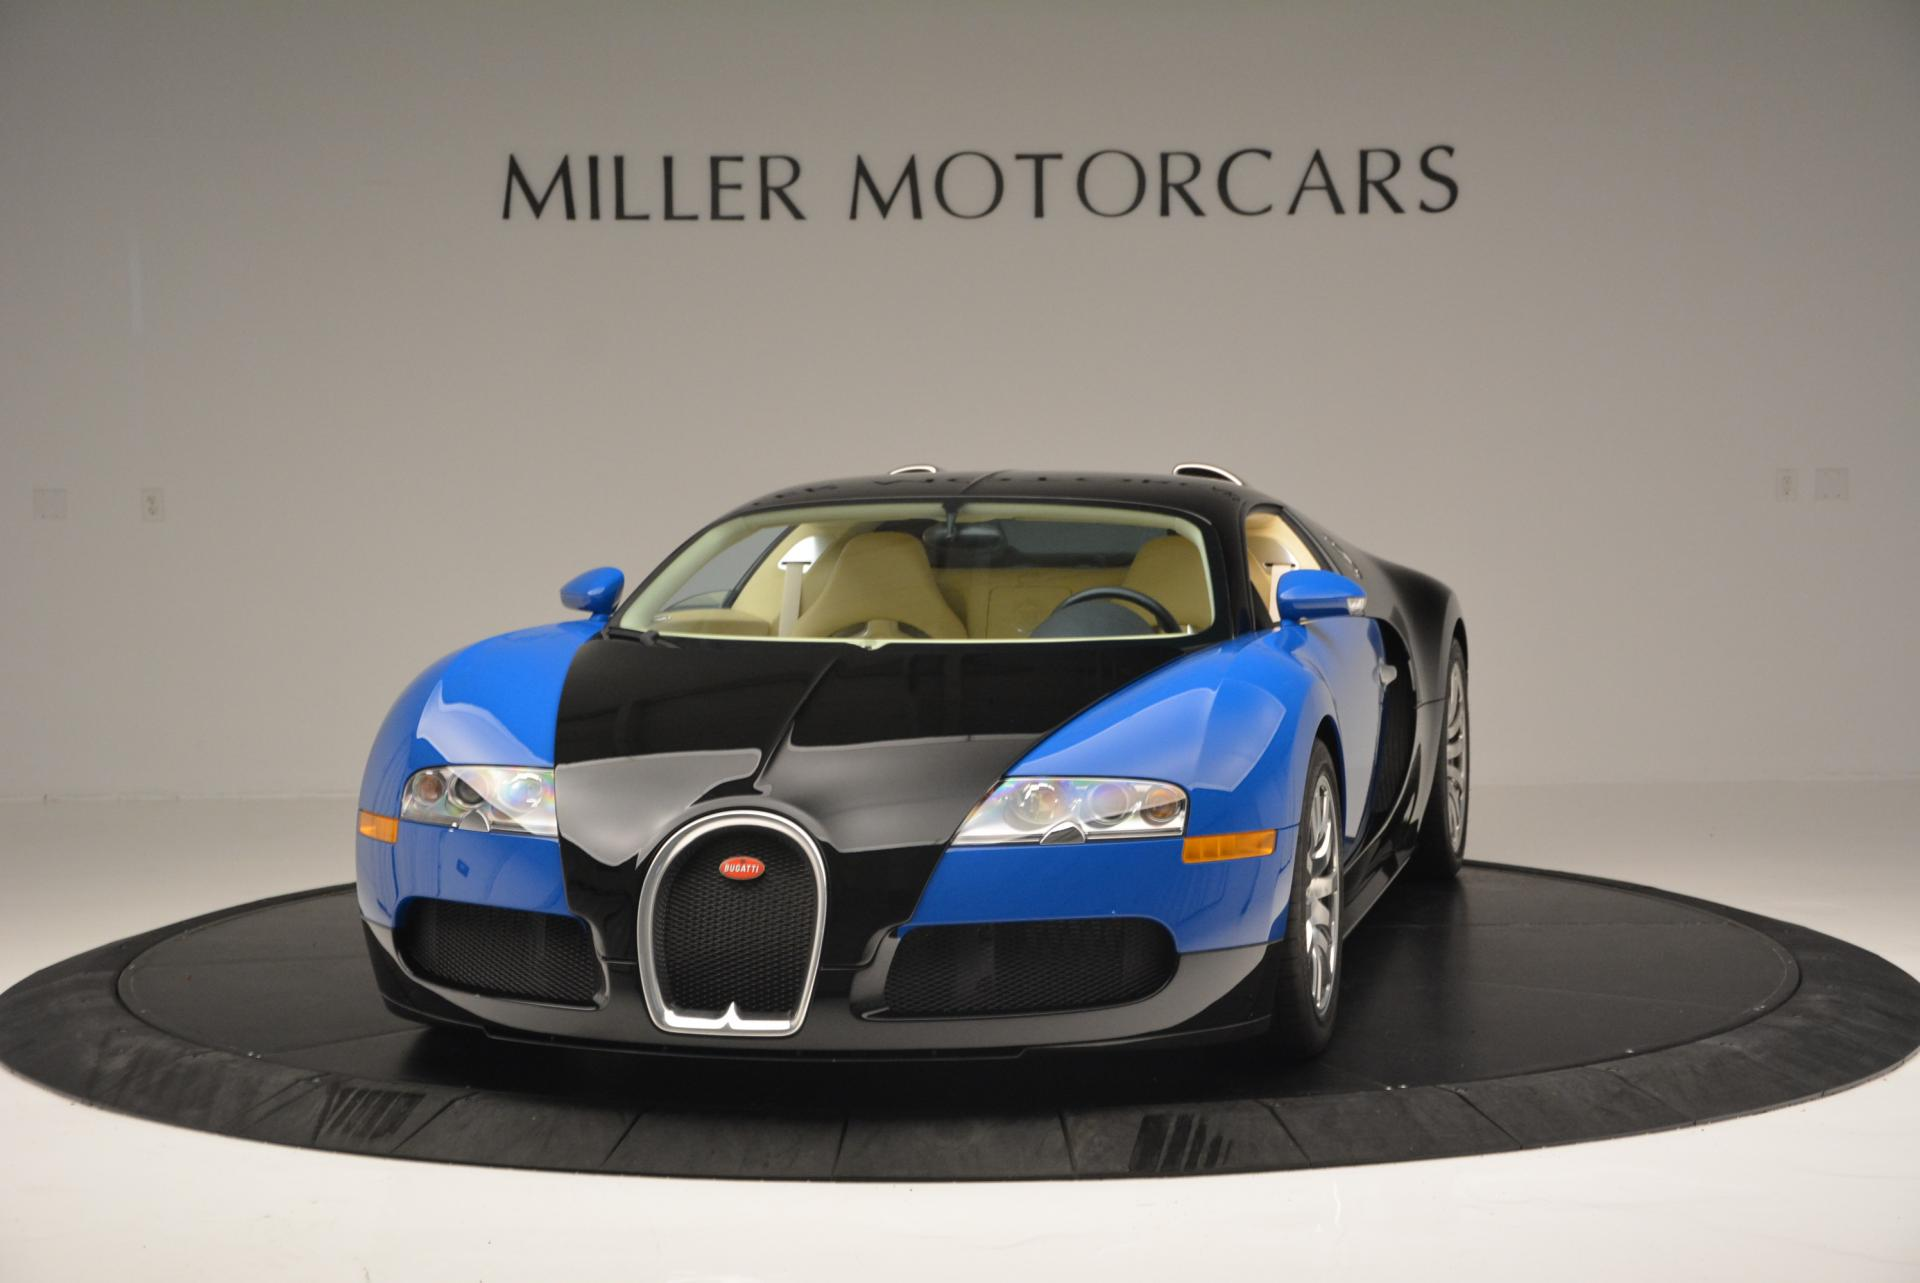 Used 2006 Bugatti Veyron 16.4 for sale Sold at McLaren Greenwich in Greenwich CT 06830 1